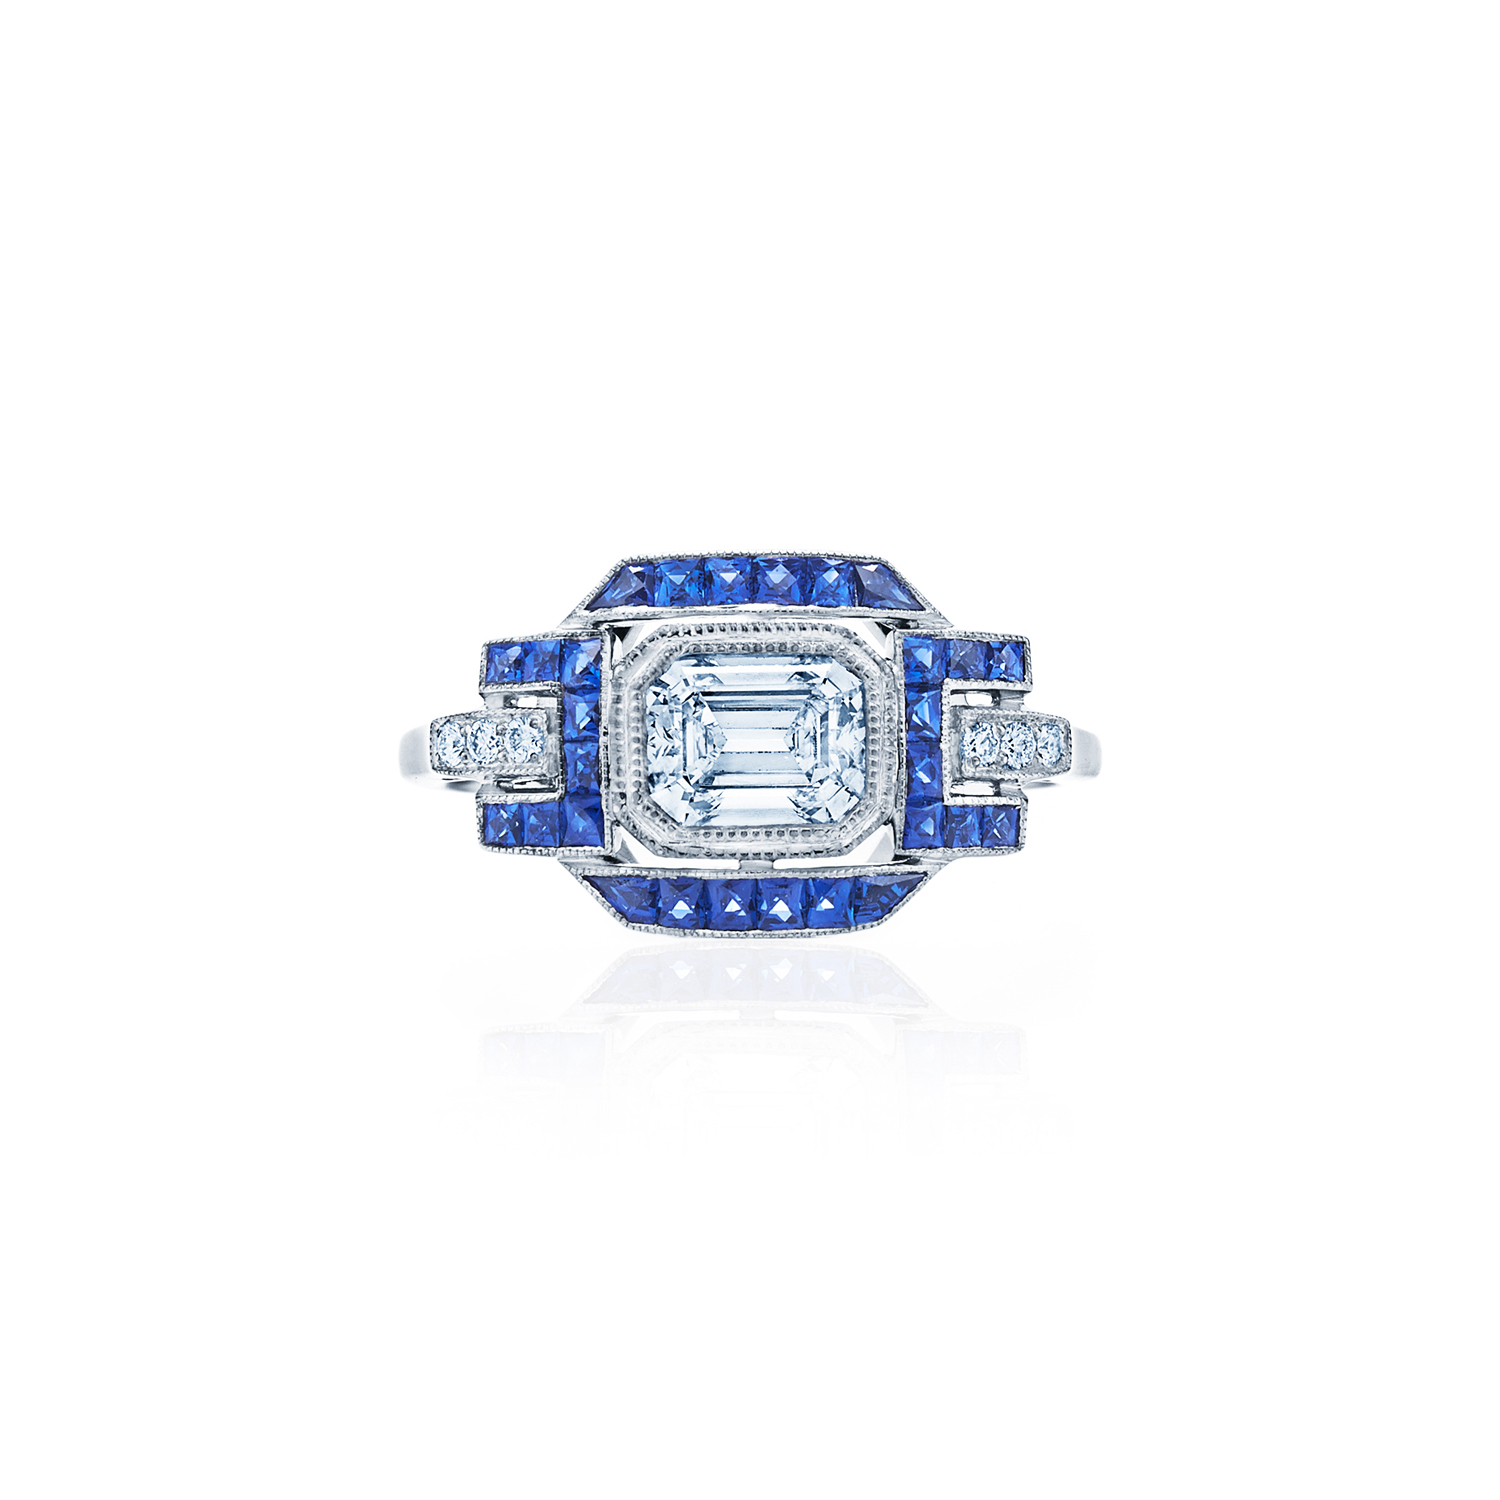 dk diamond st at maarten jewelry rings online ring in kwiat store gems product best attachment cascade stores martin and